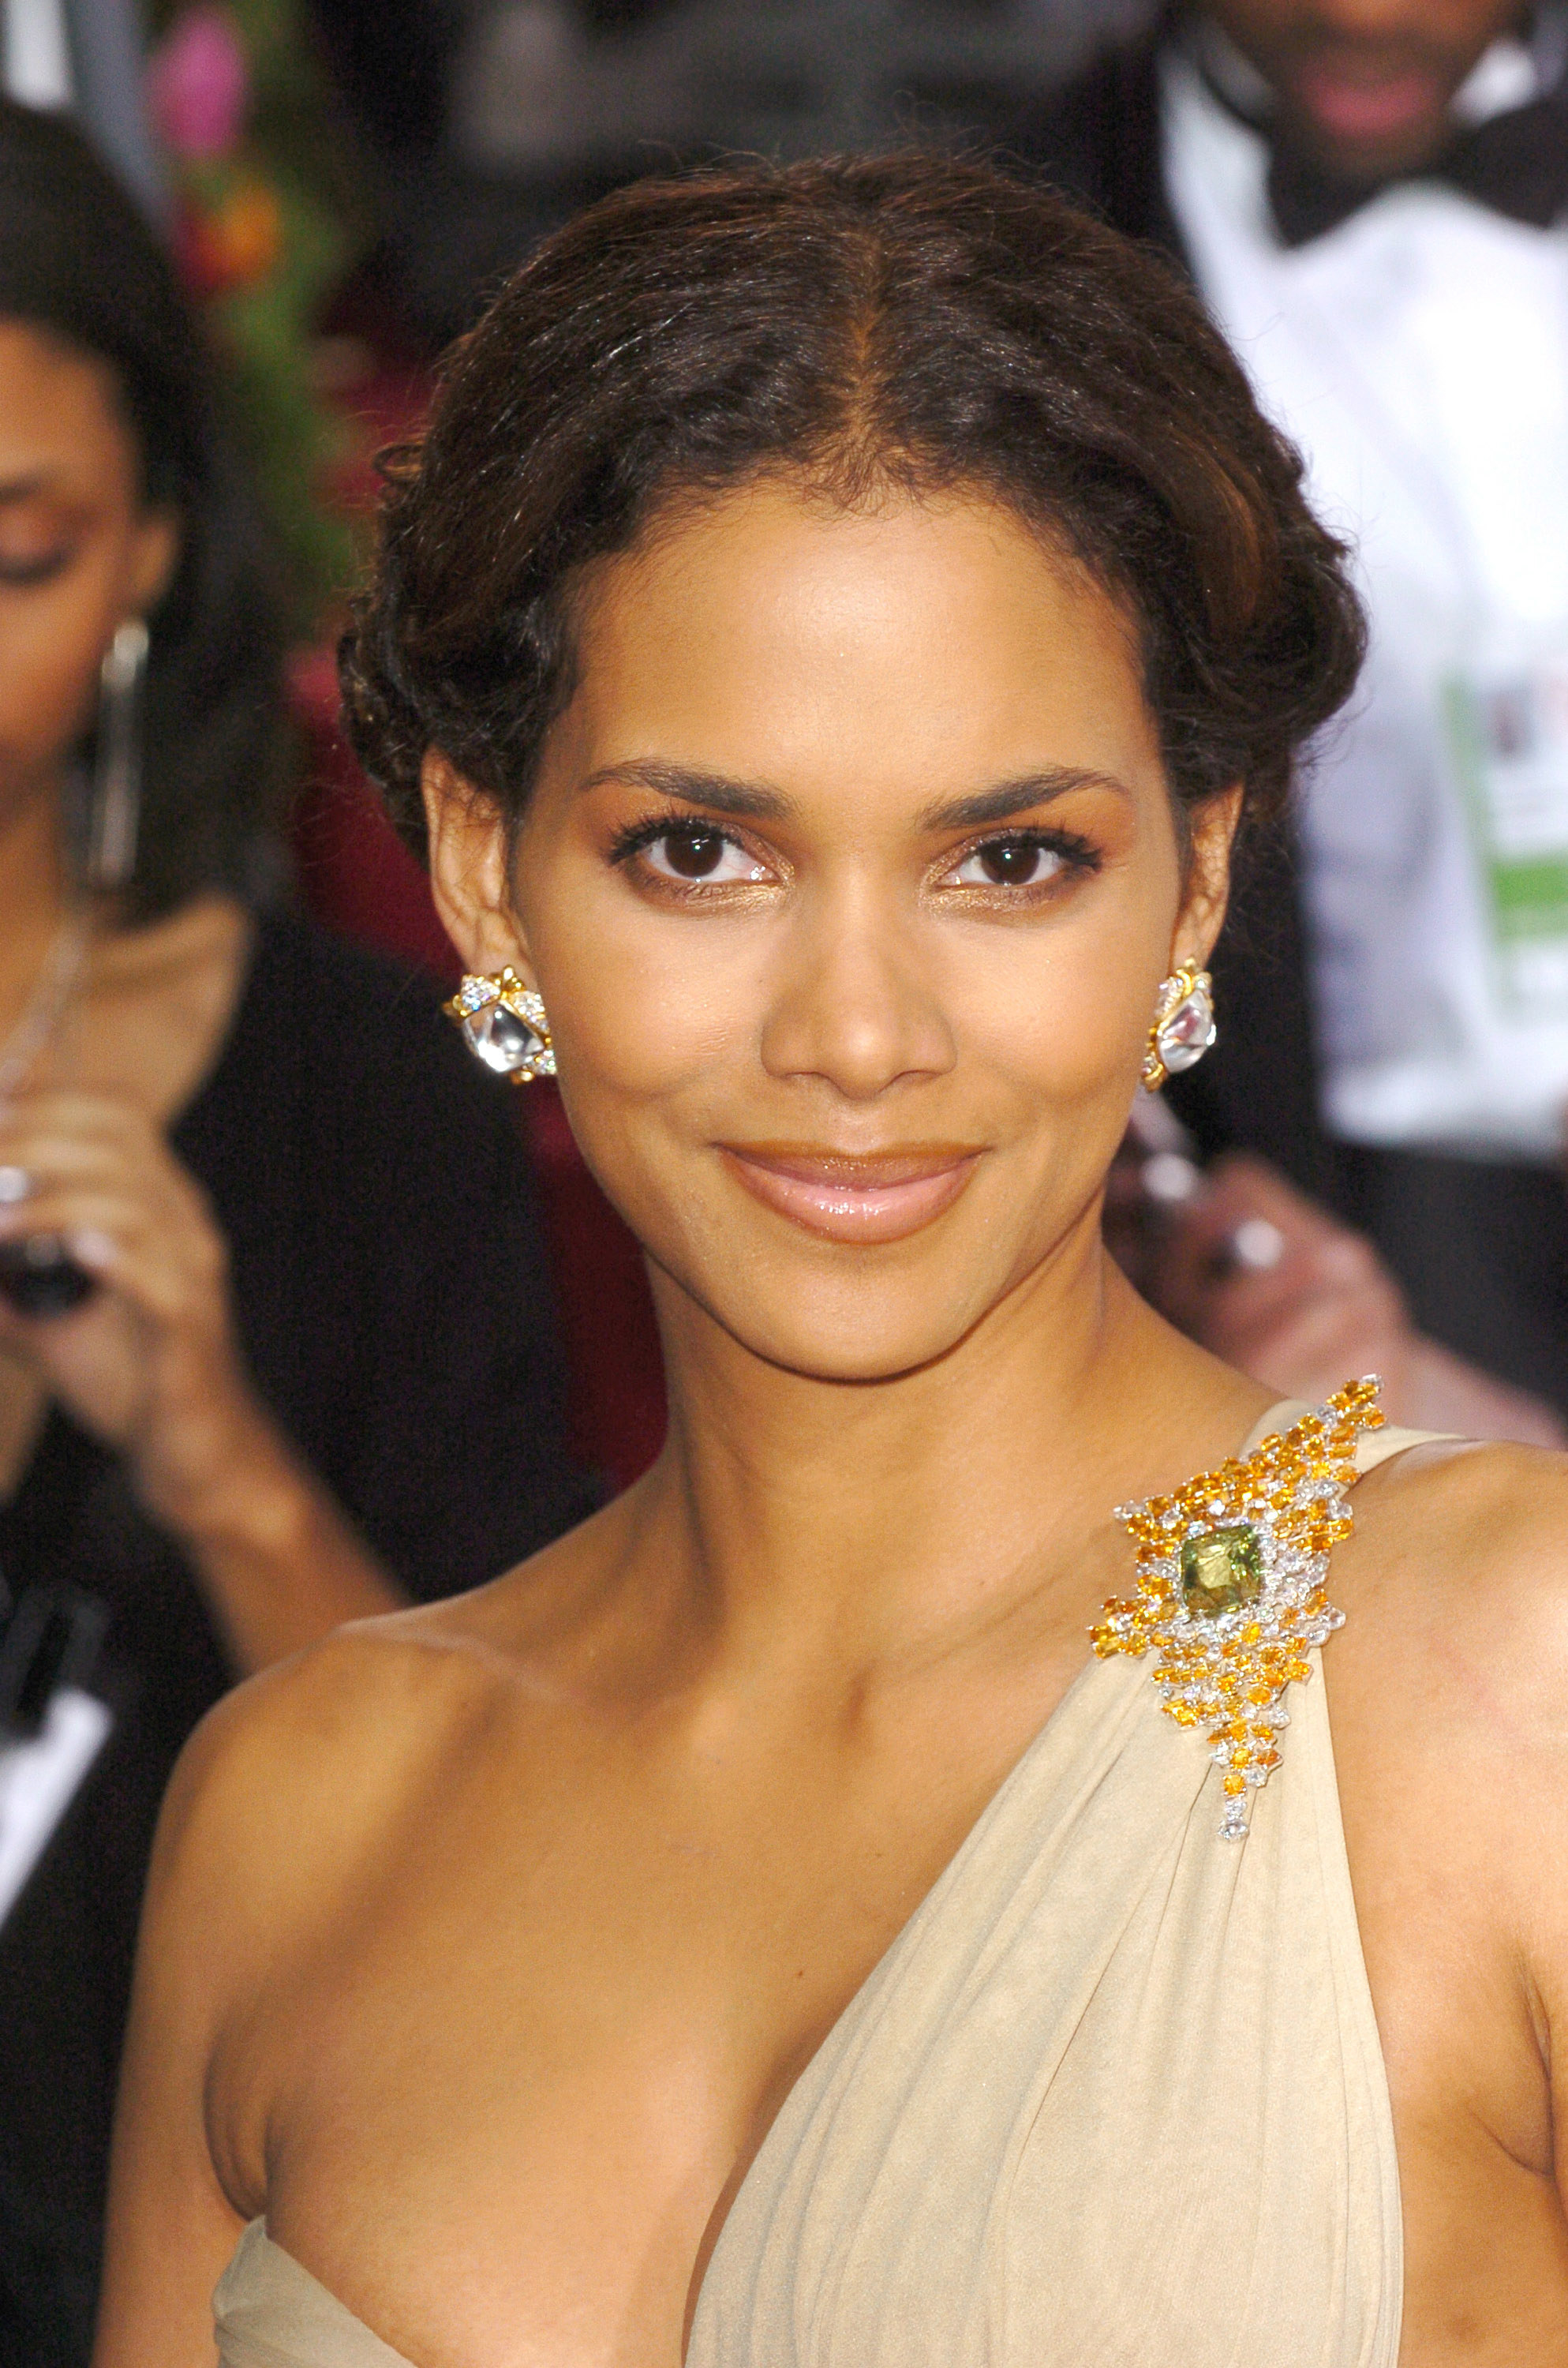 Halle Berry smiling, wearing a single shoulder toga-esque dress with a brooch and her hair pulled back